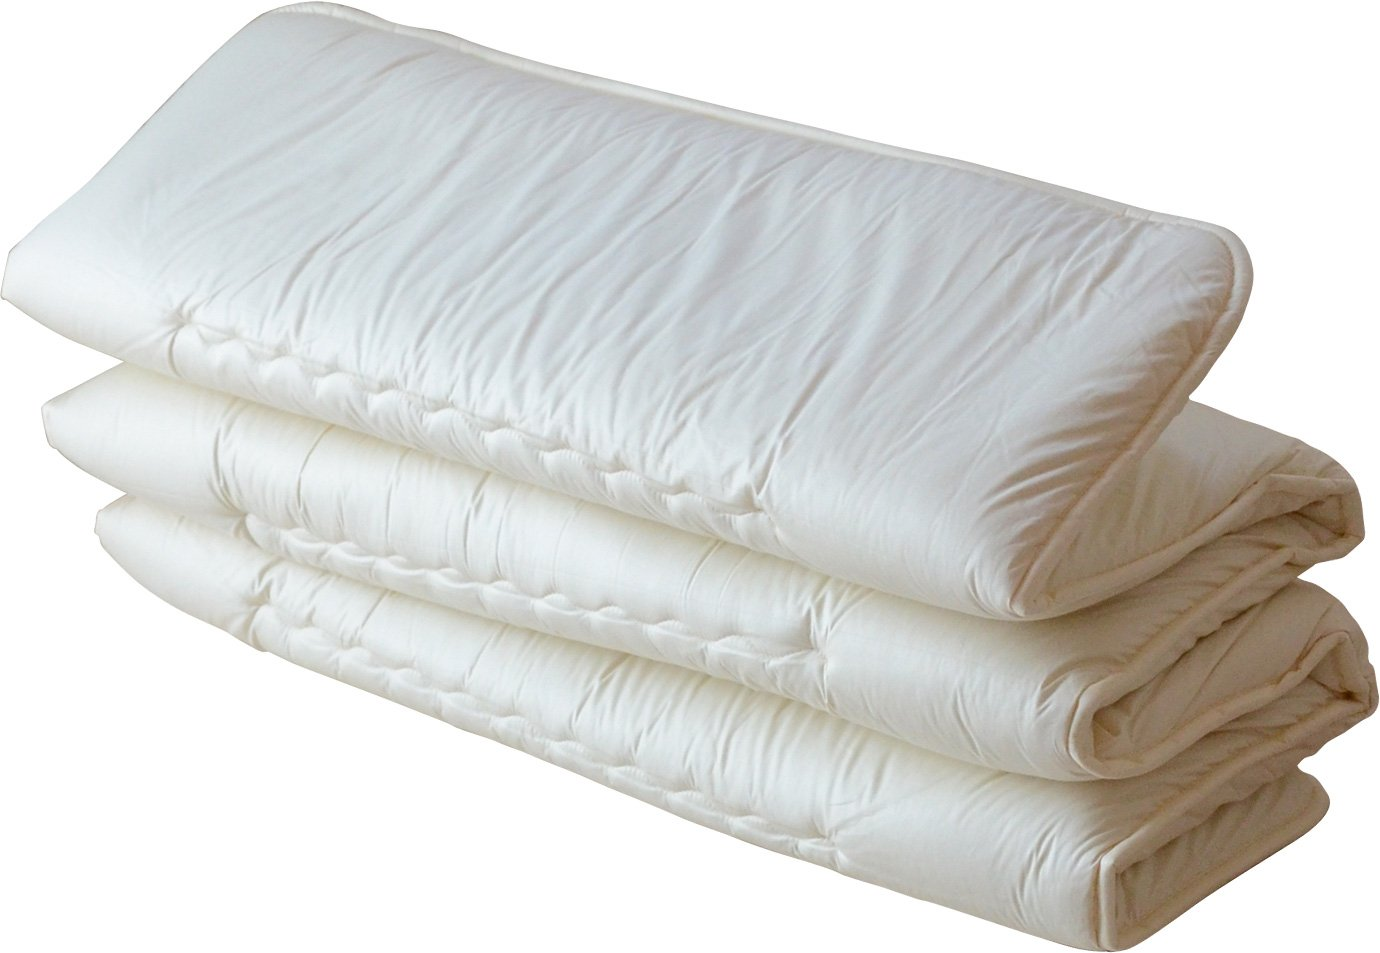 70004a1ee EMOOR Japanese Traditional Mattress Futon 6-fold, Full Size. Made in Japan  product